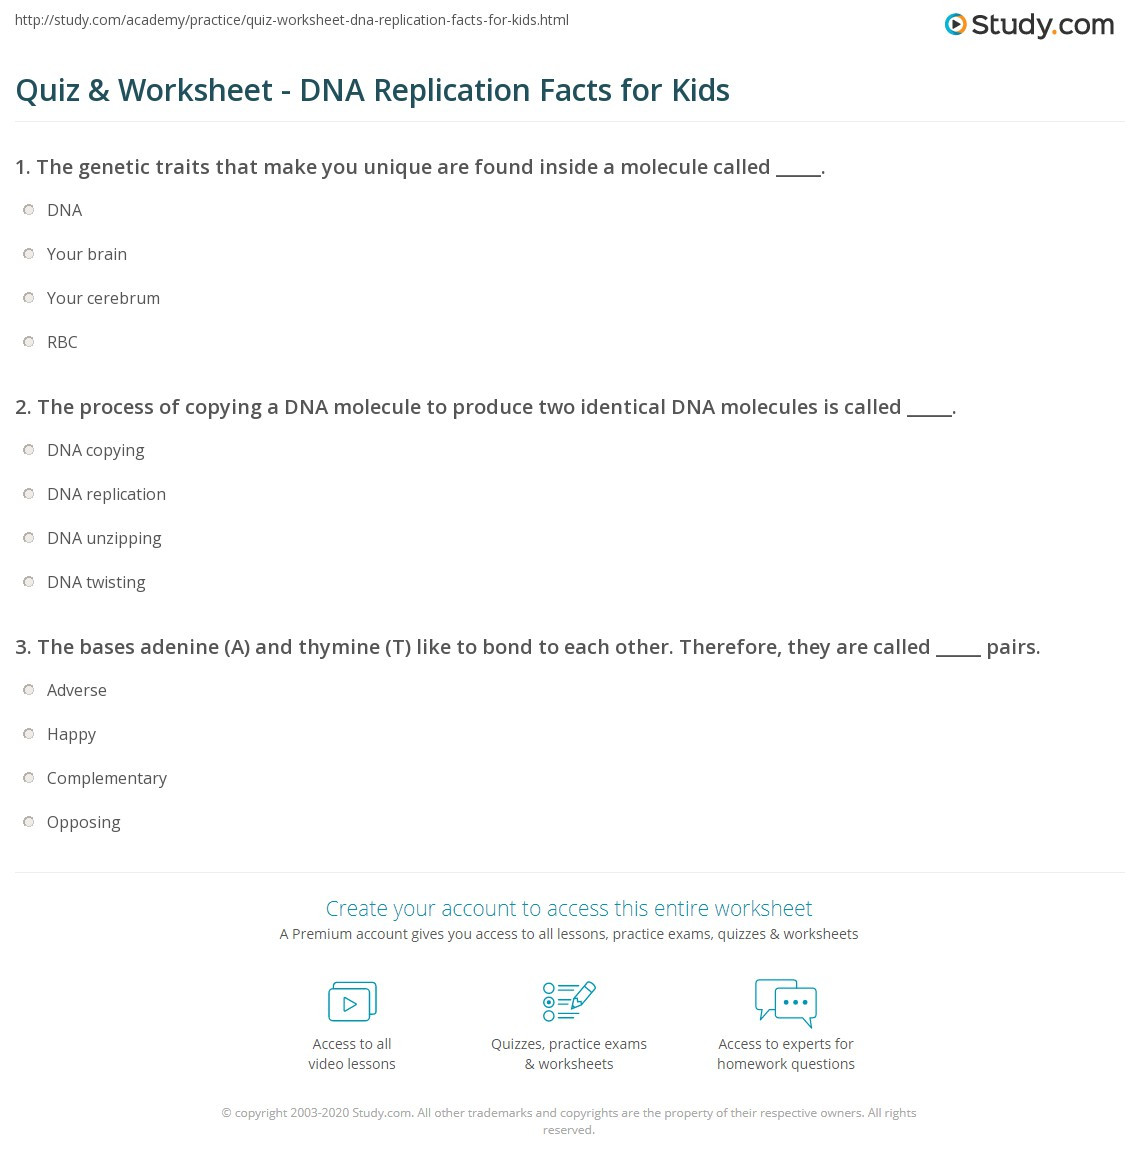 Dna and Replication Worksheet Quiz & Worksheet Dna Replication Facts for Kids